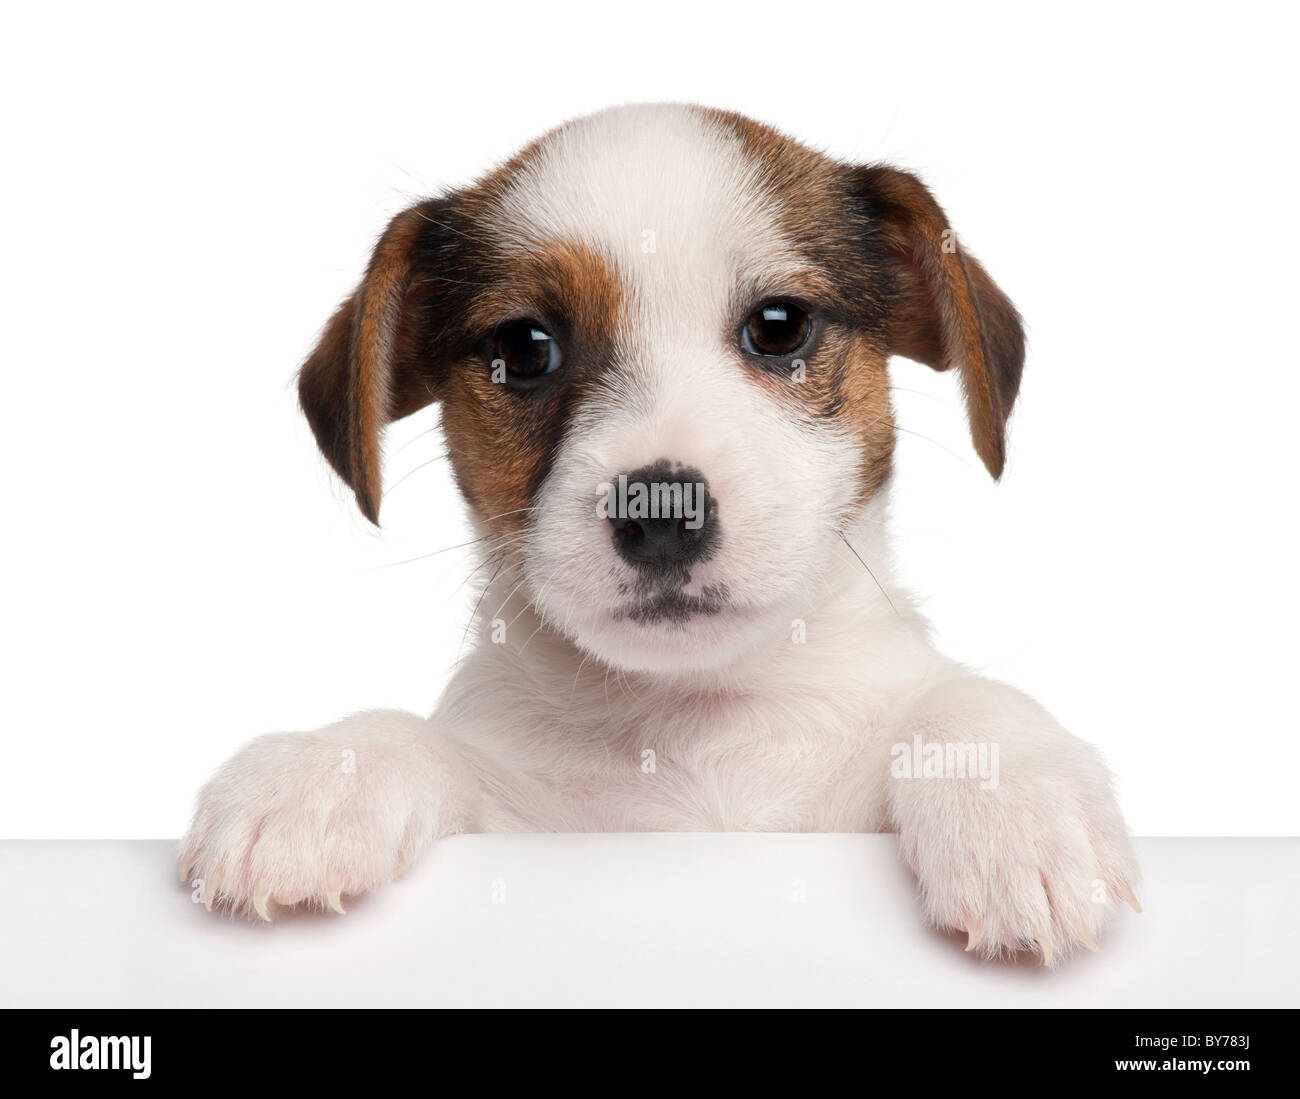 Jack Russell Terrier puppy, 2 months old, getting out of a box in front of white background - Stock Image